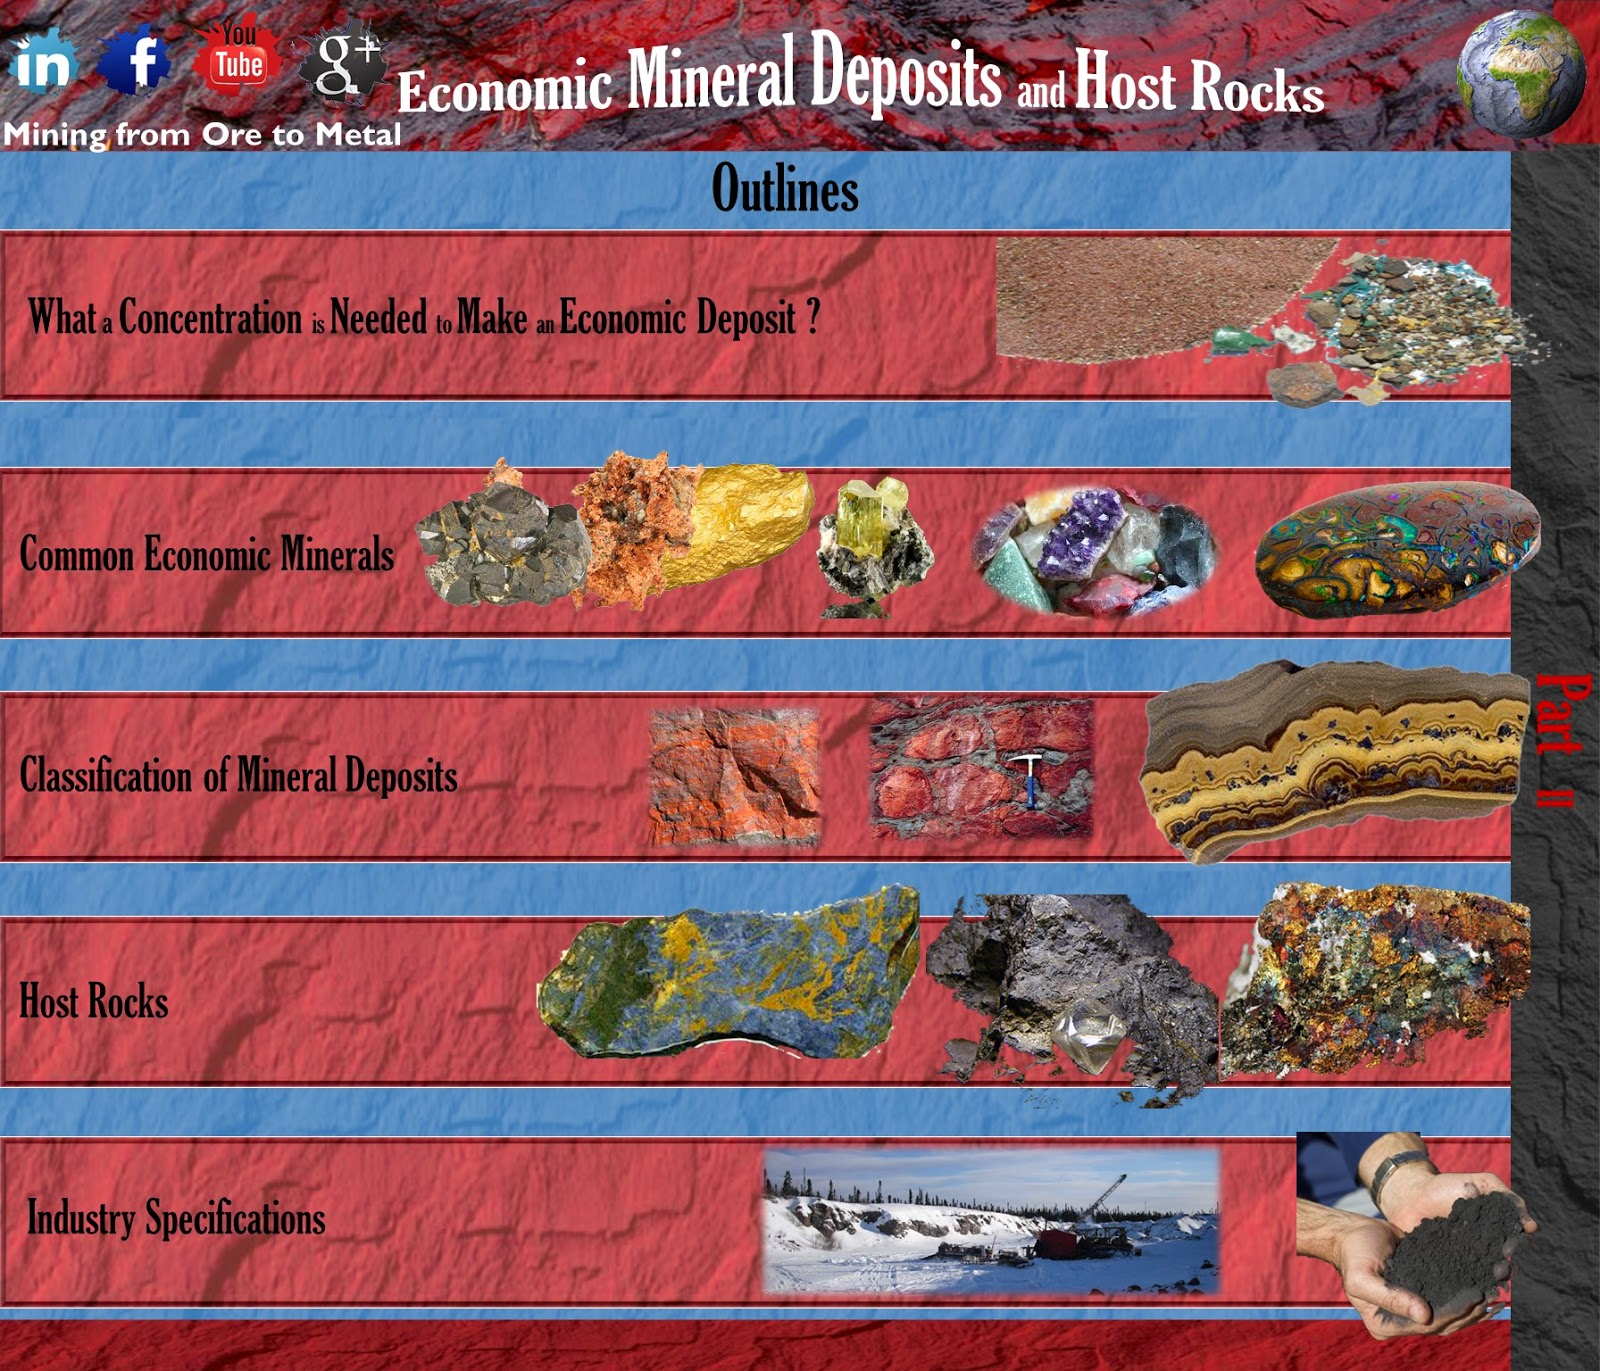 Economic Mineral Deposits and Host Rocks